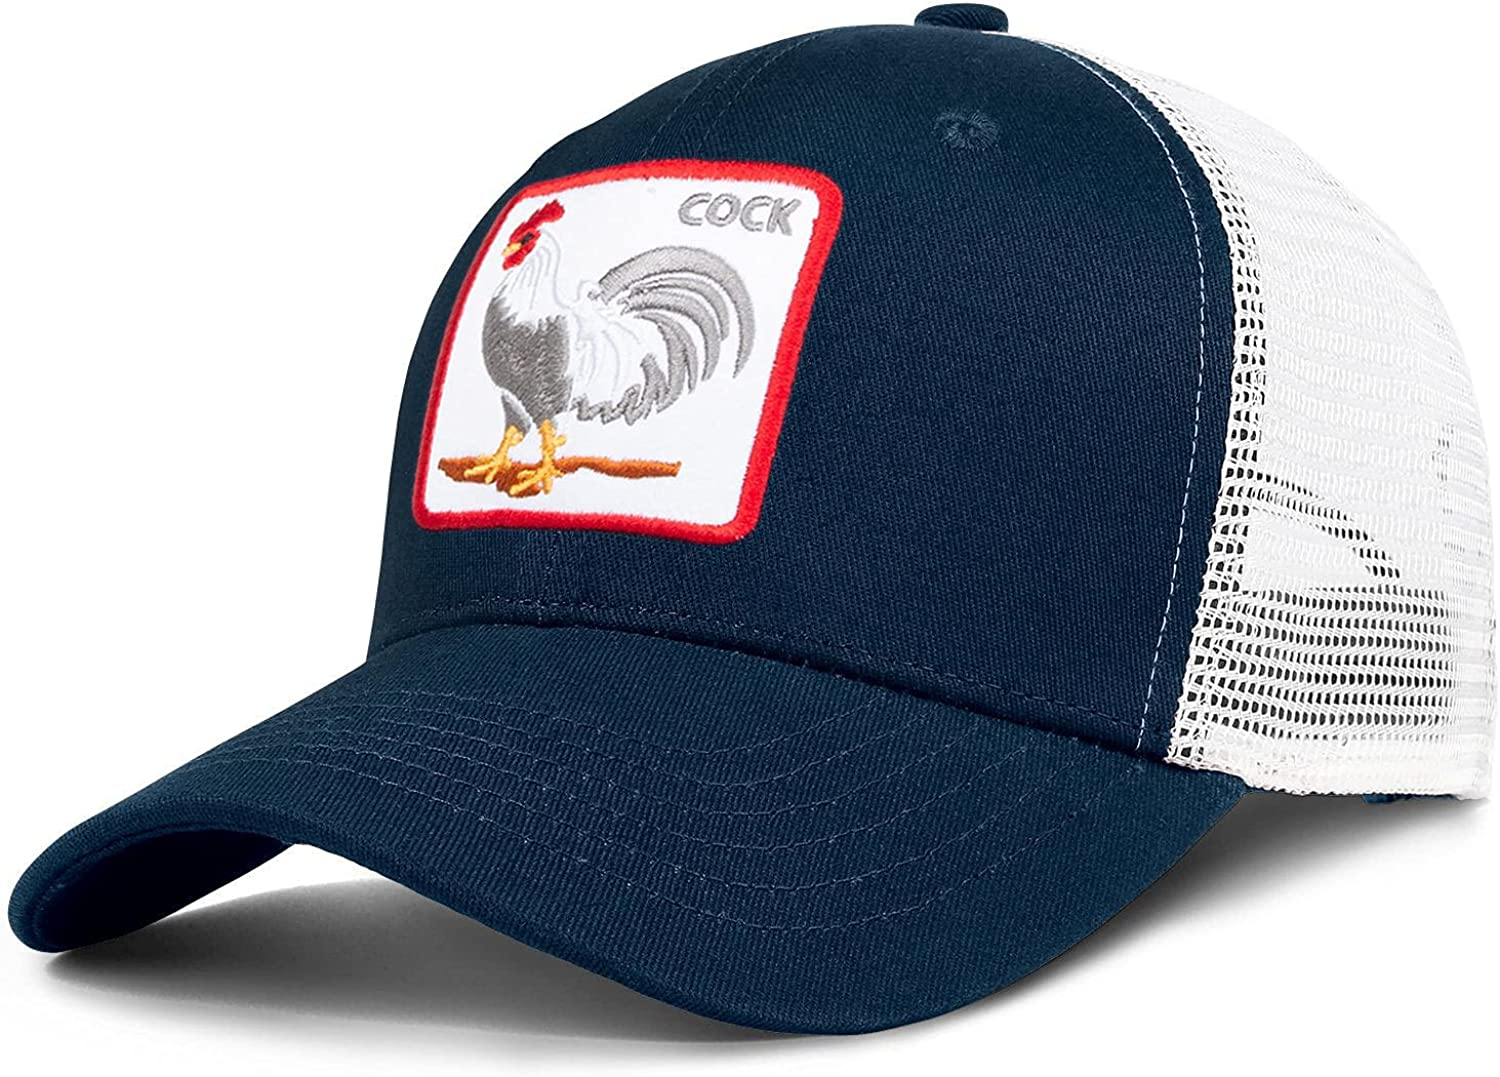 Animal Farm Hats -Mesh Trucker for Men Snap Women Wholesale - Bac Quantity limited and